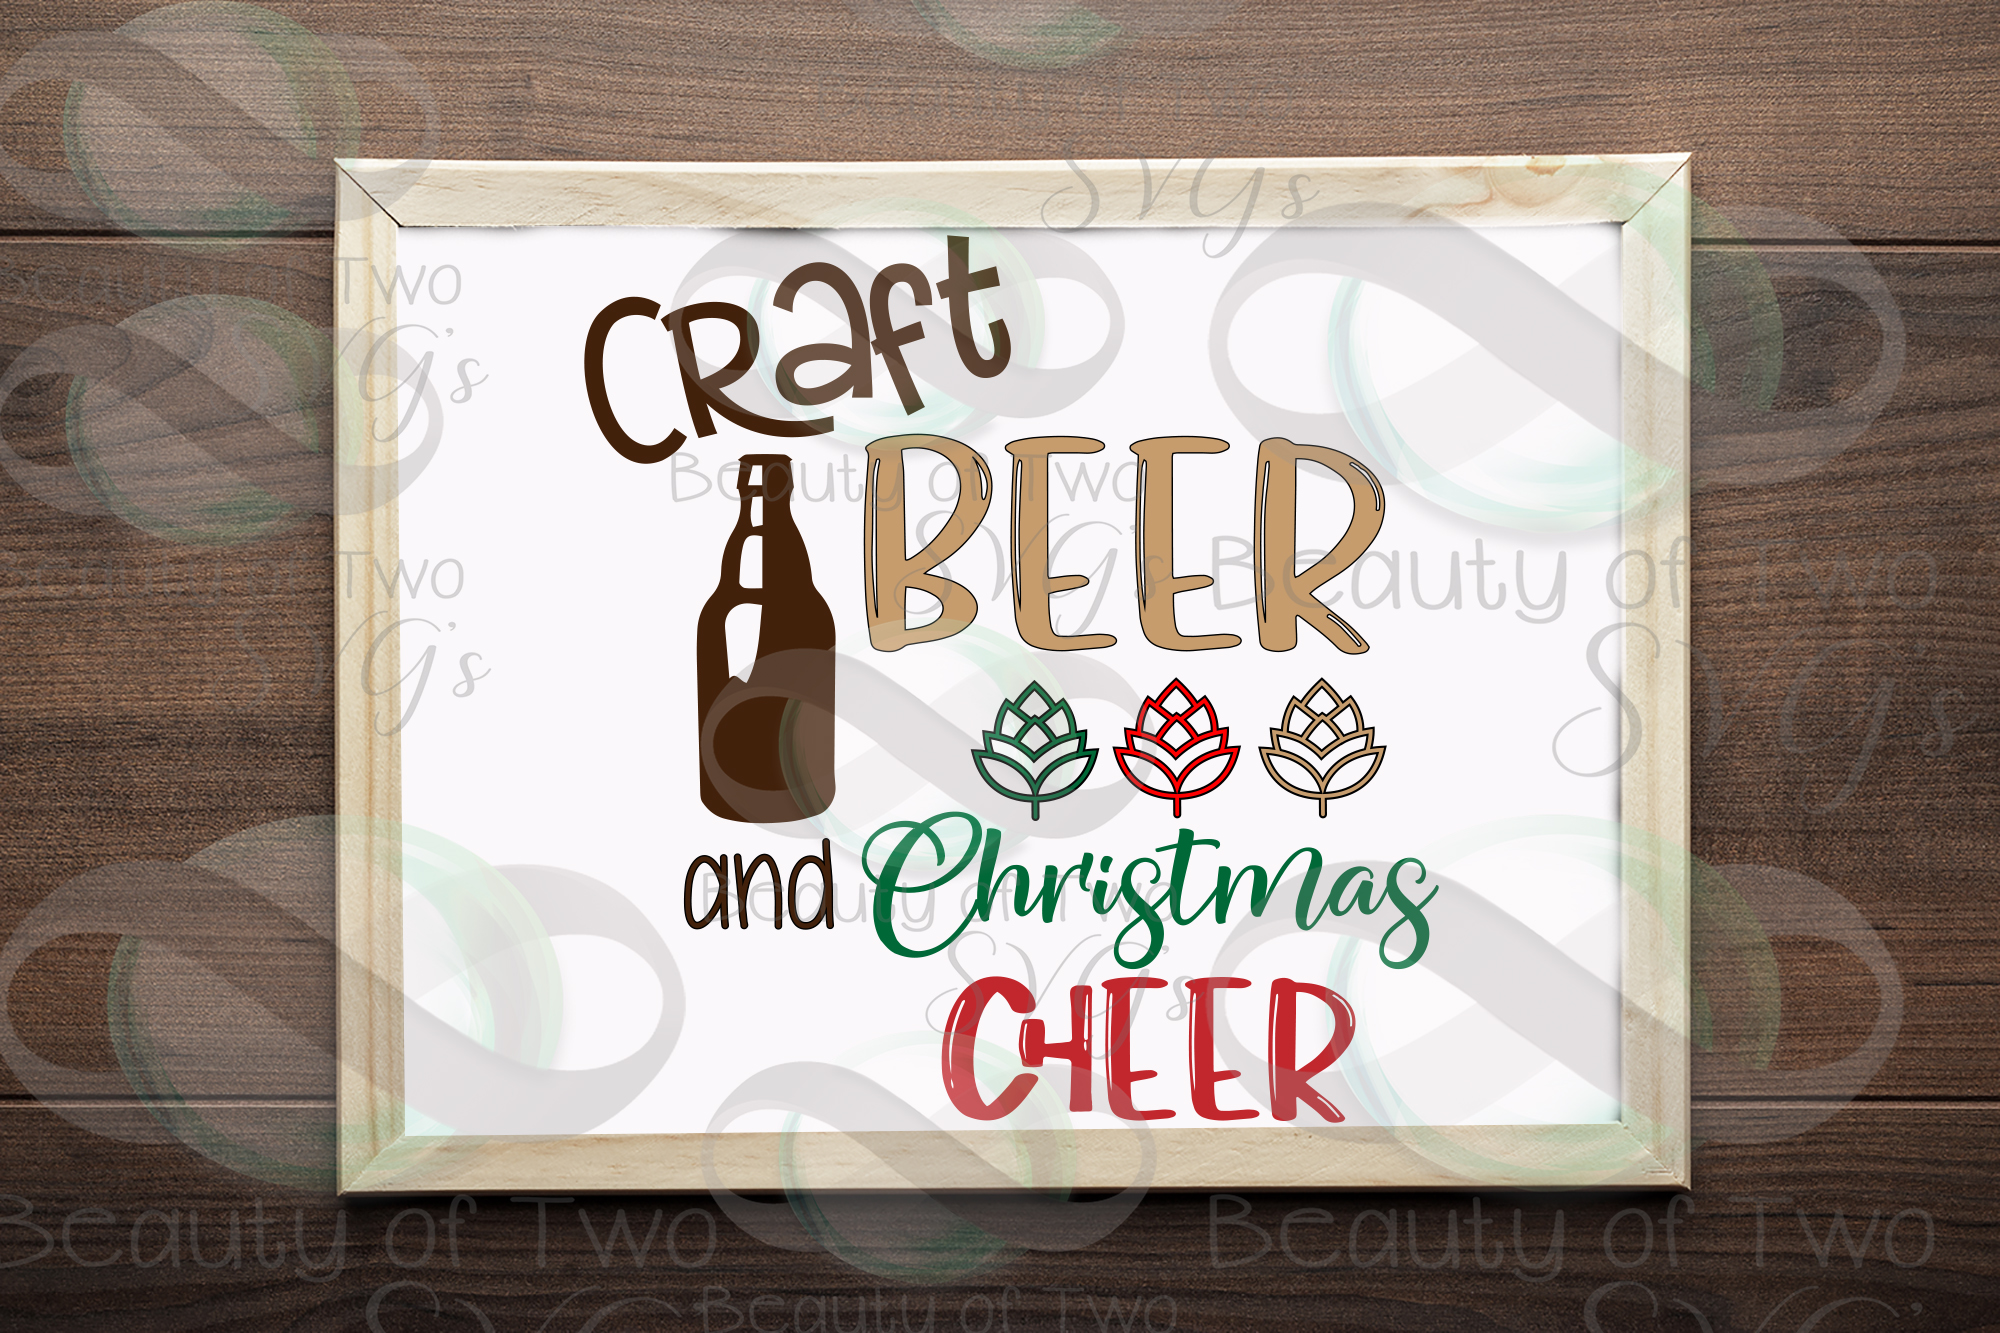 Christmas svg, Craft beer and Christmas cheer svg, beer svg example image 1